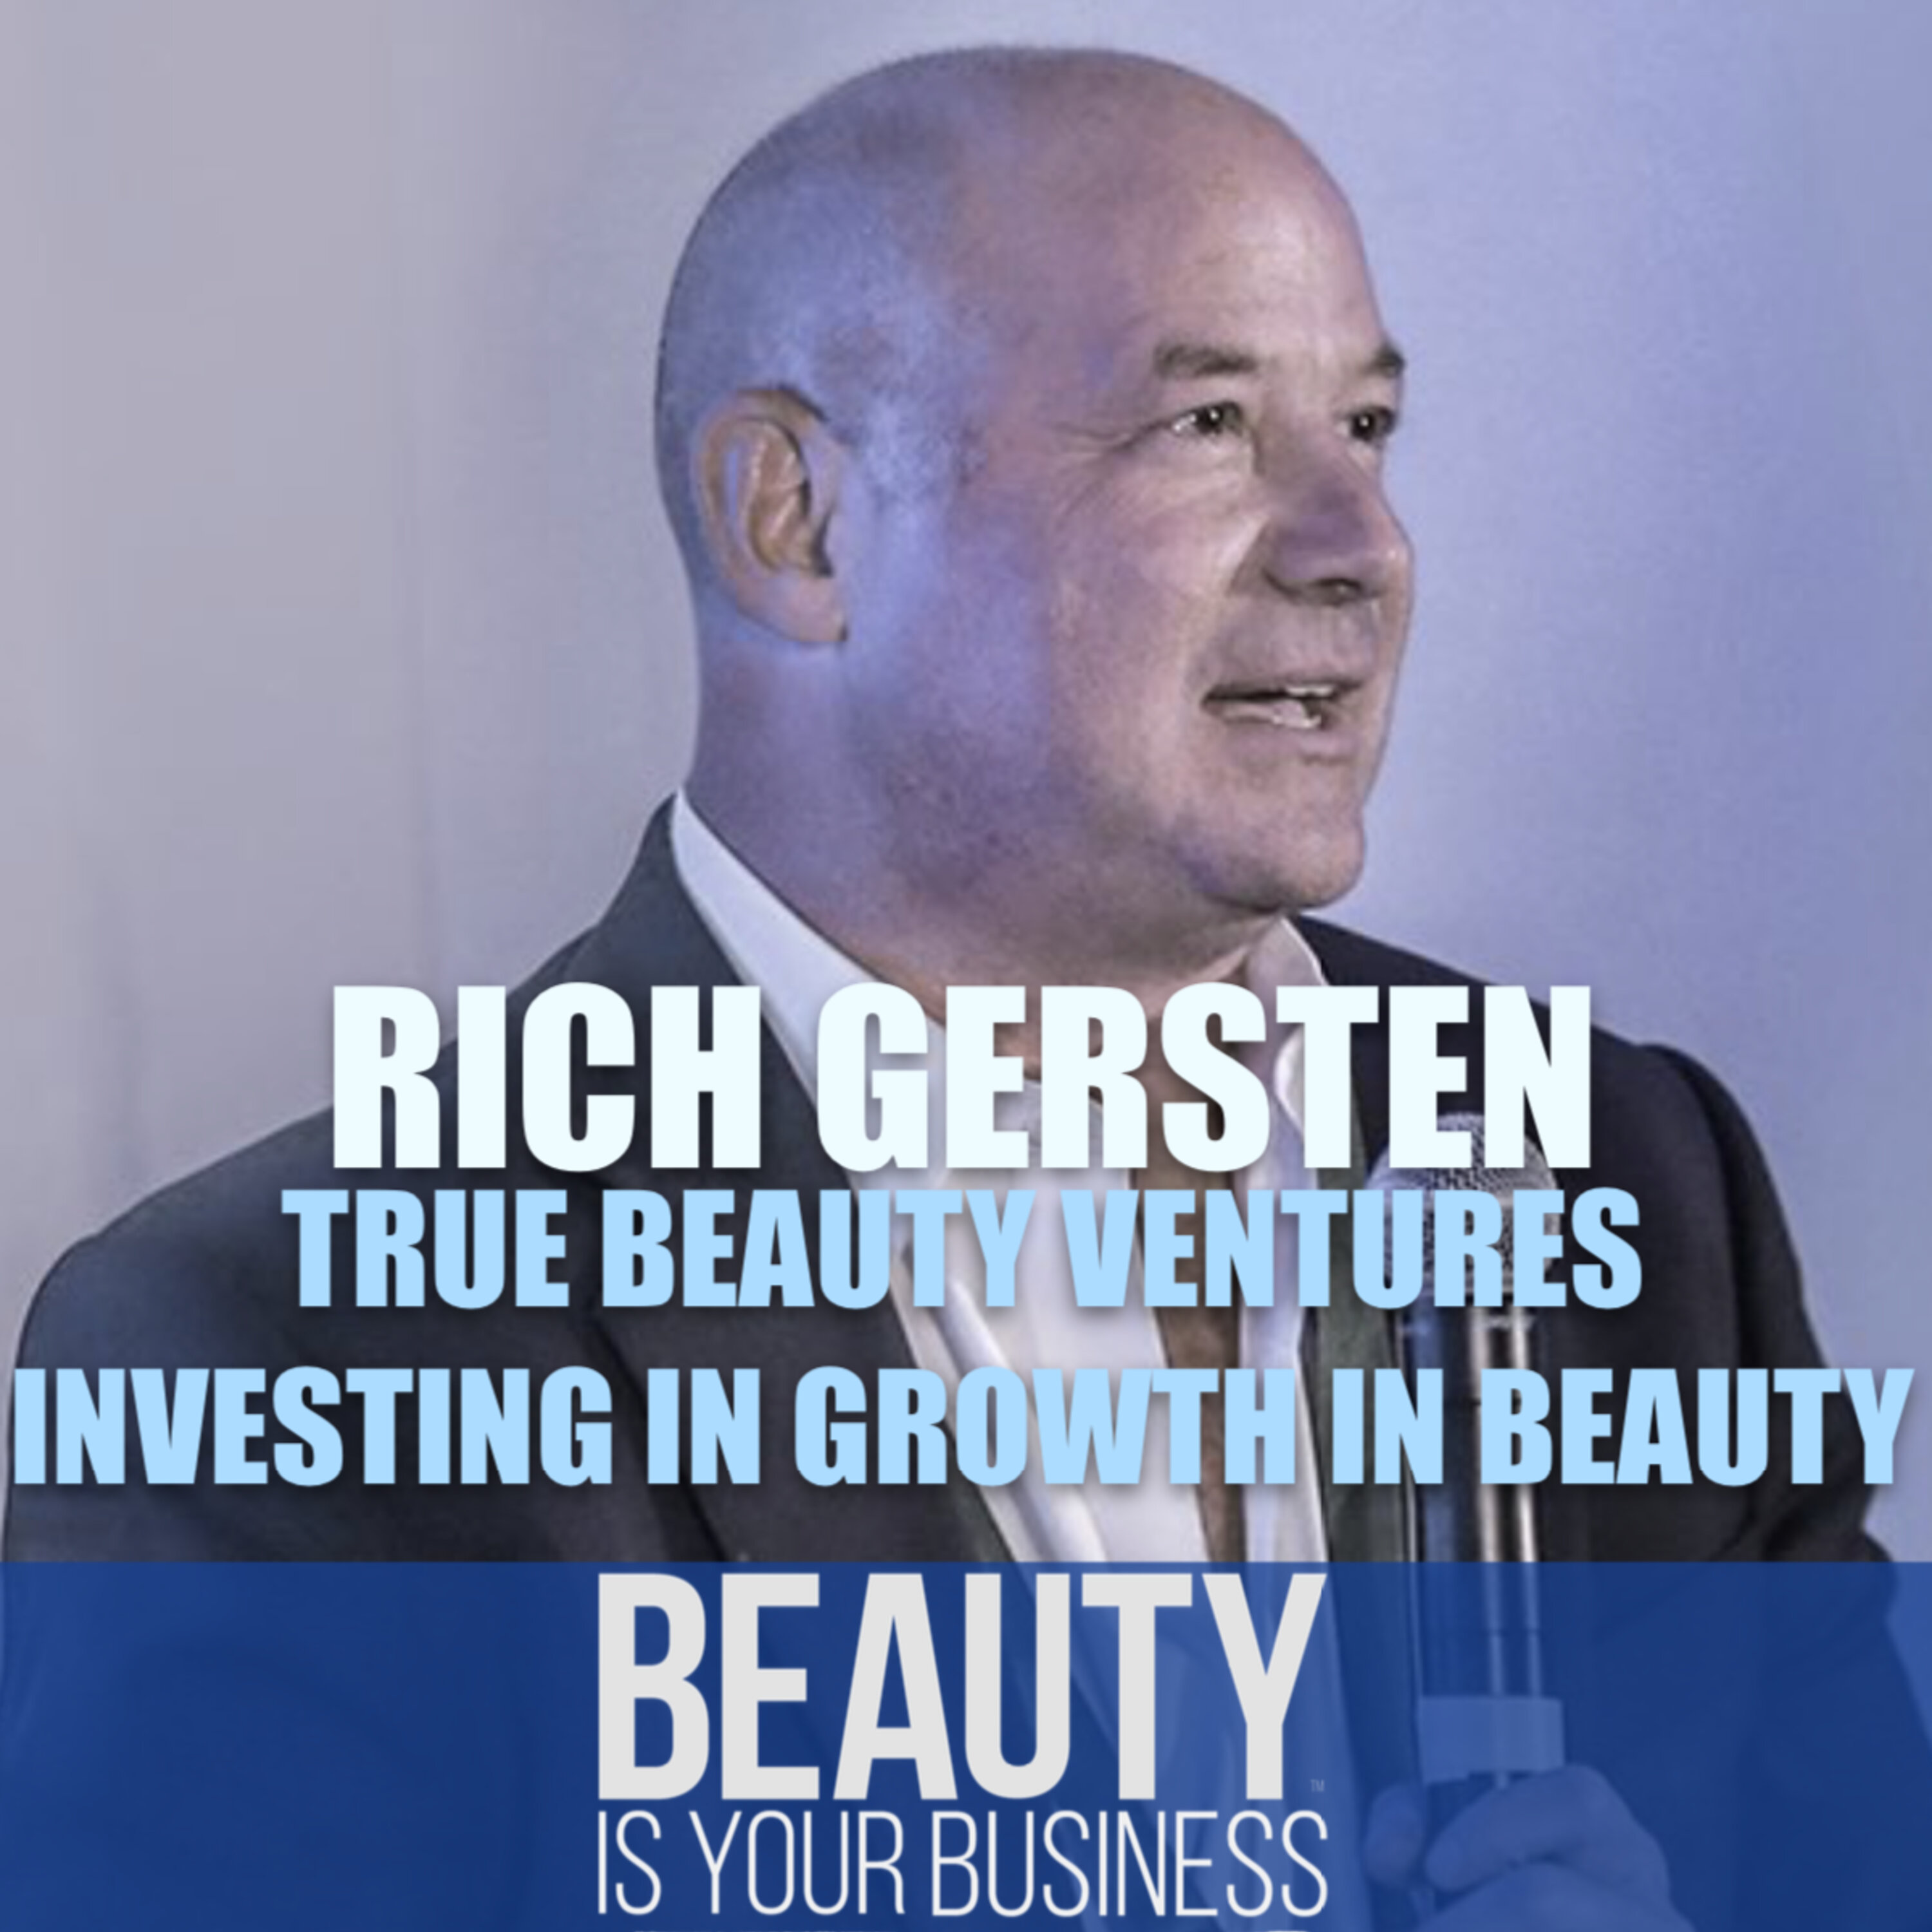 Rich Gersten of True Beauty Capital - Investing in Growth